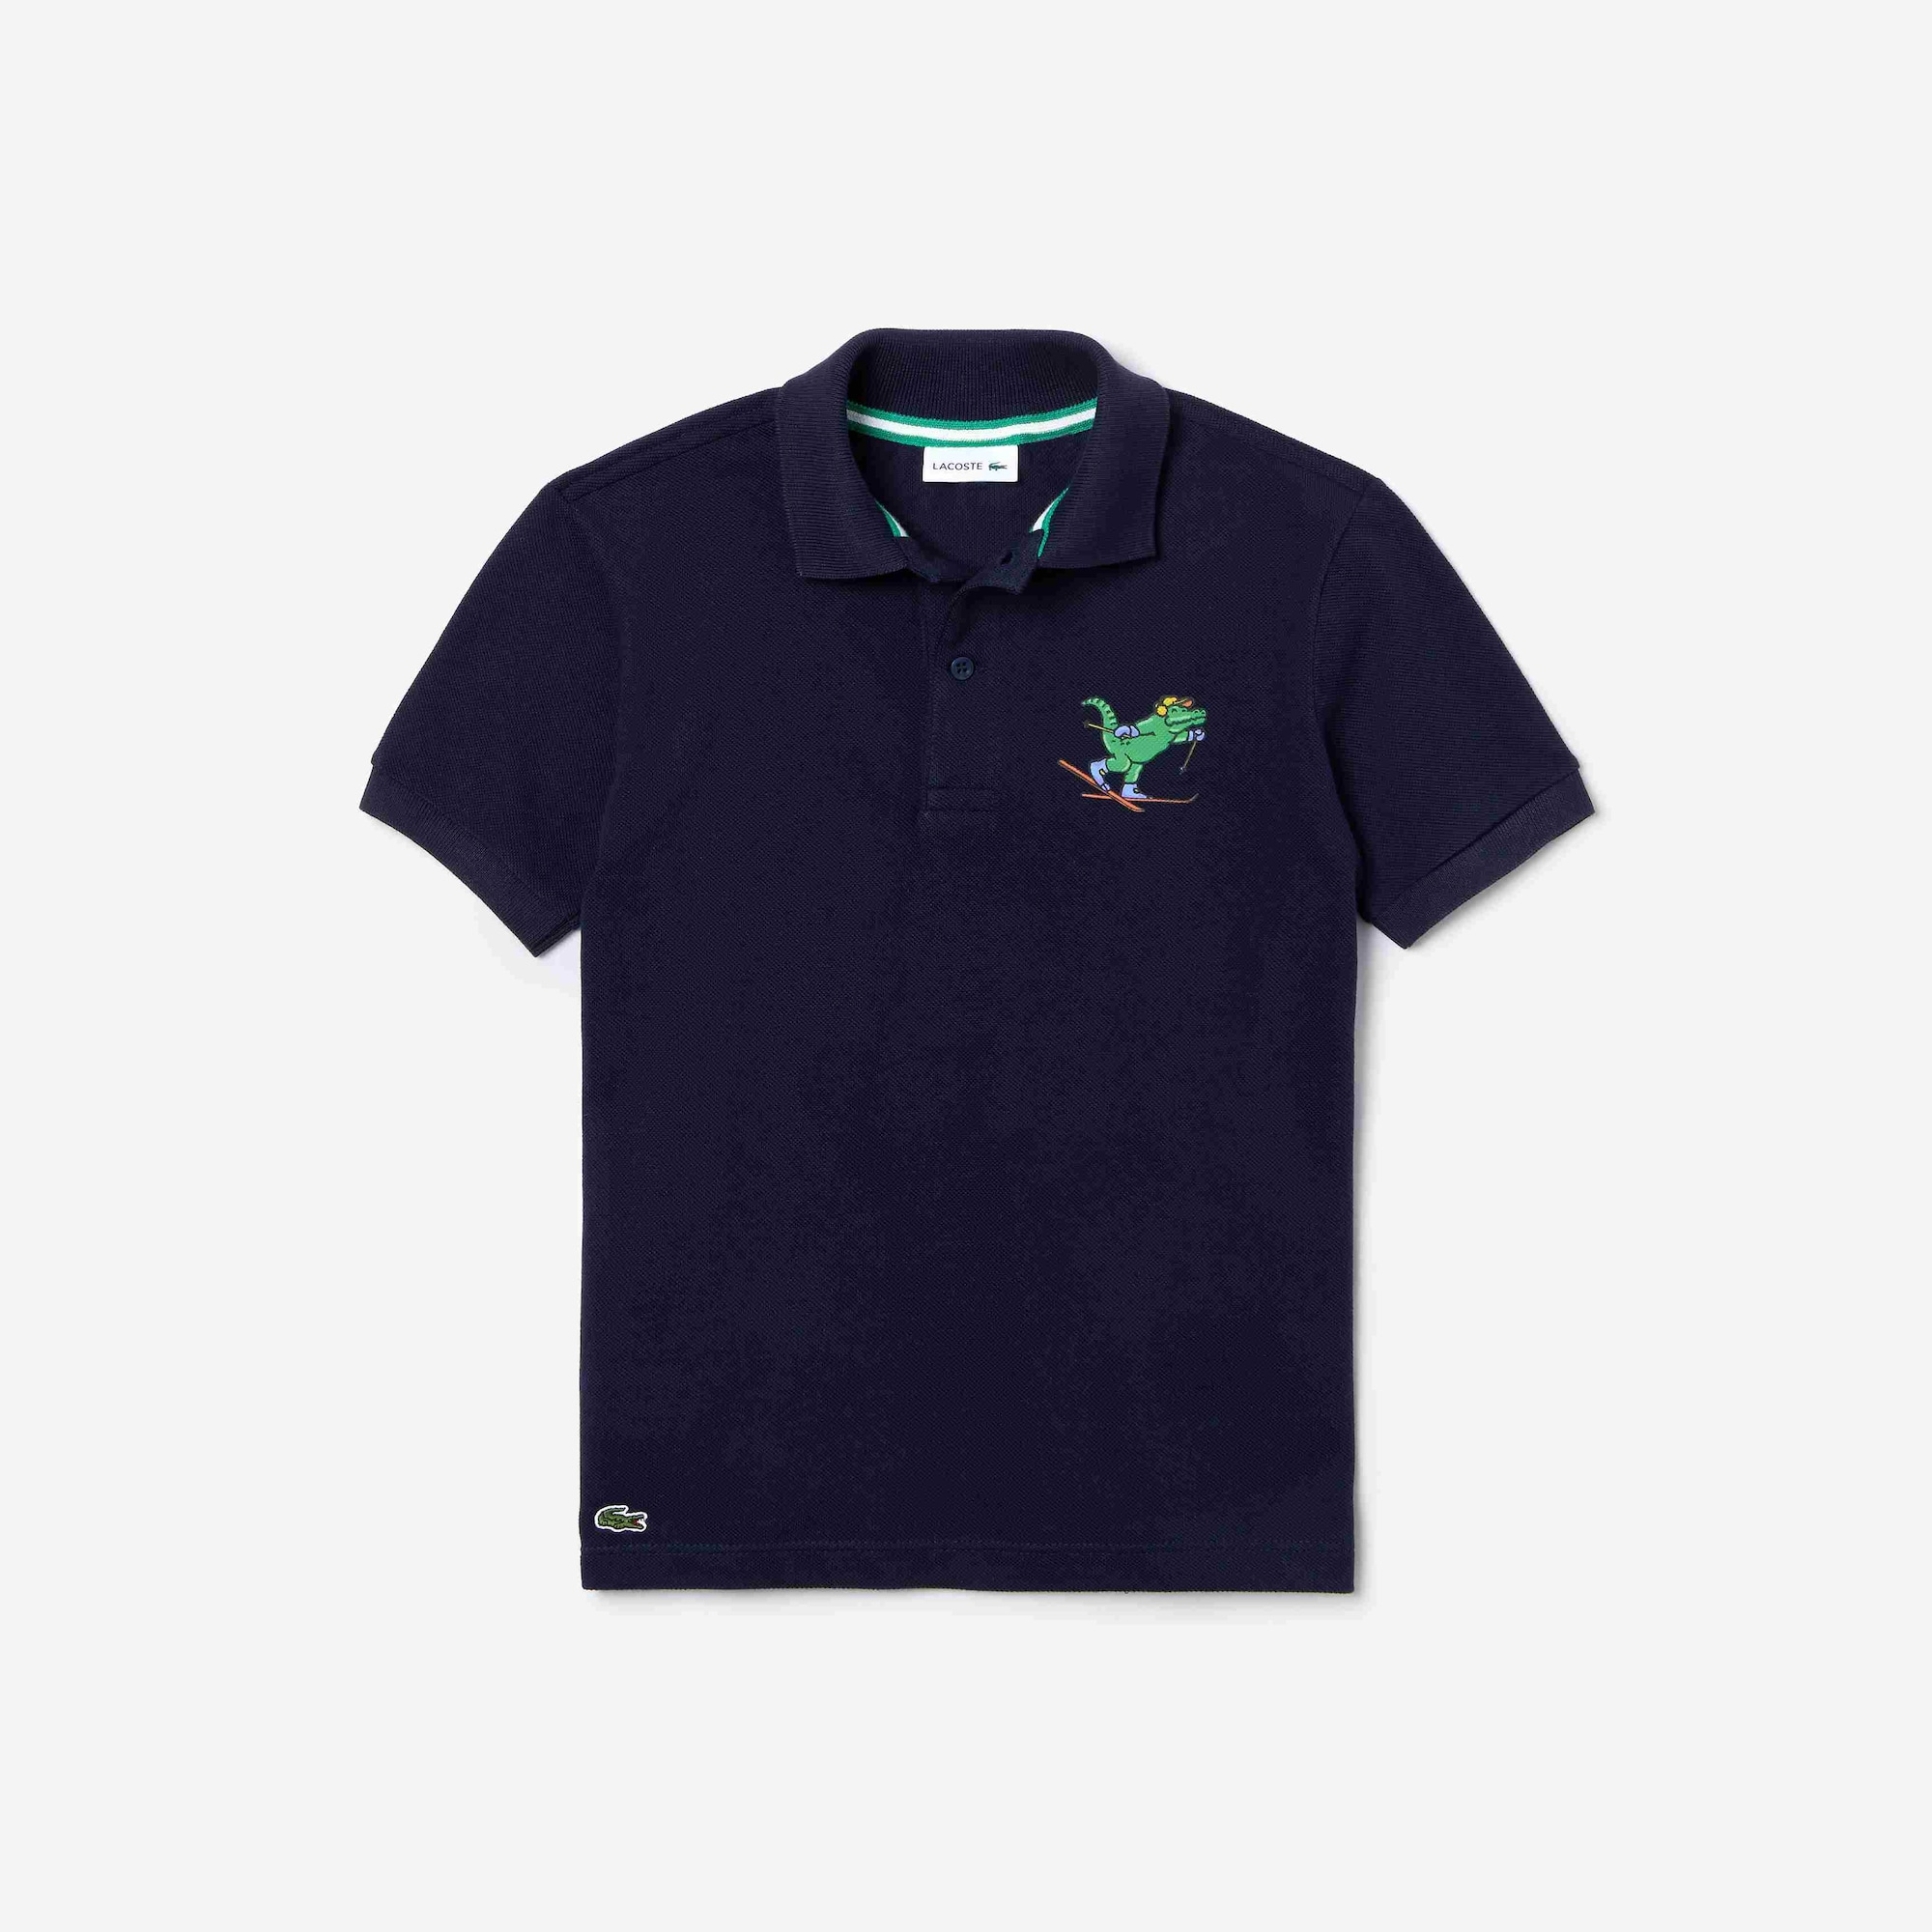 Boys' Fun Crocodile And Surprises Lacoste Cotton Polo Shirt Gift Set